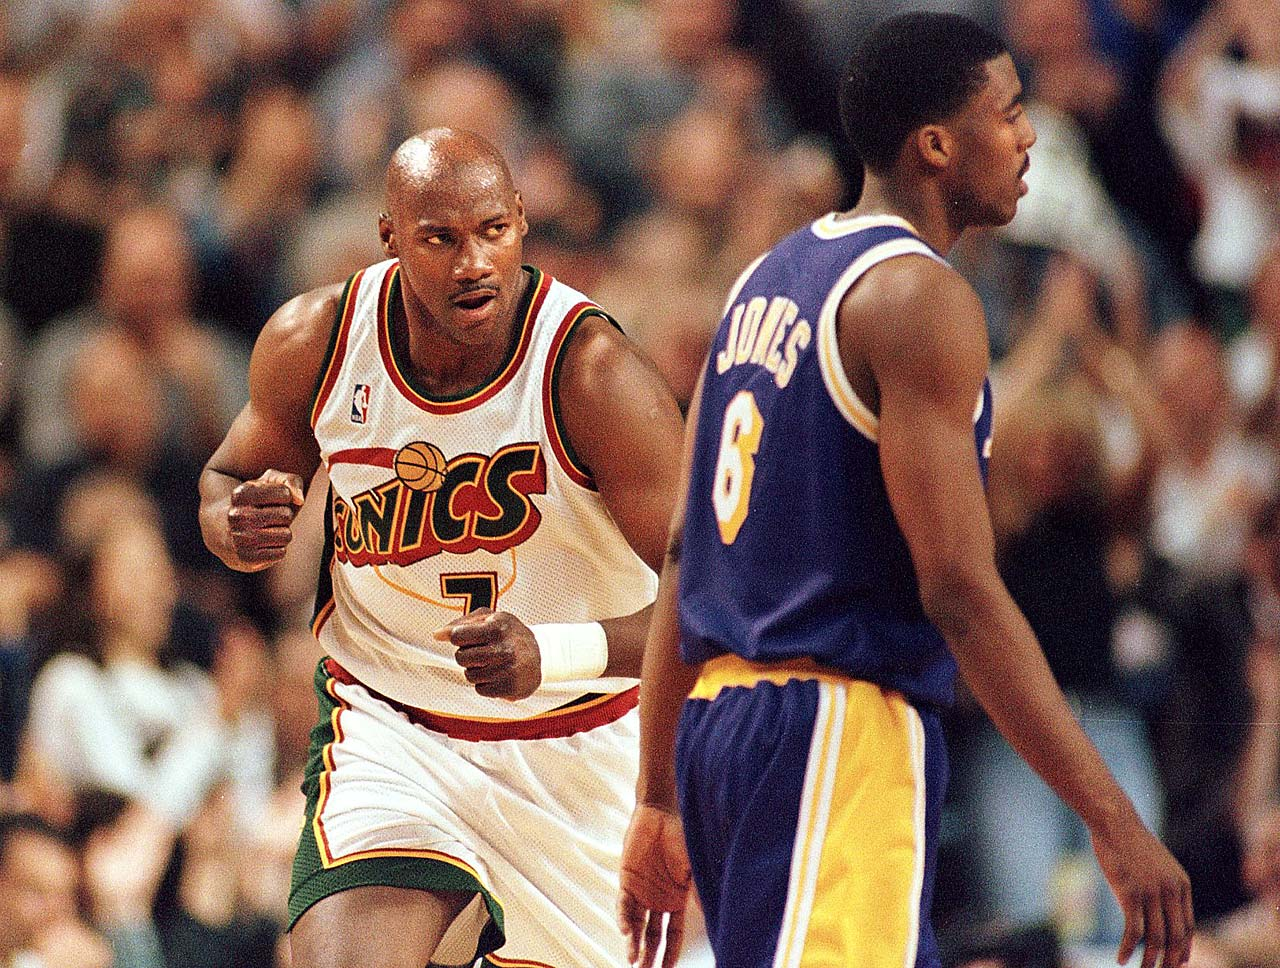 Jerome Kersey pumps his fist as he runs past Eddie Jones during a Western Conference semifinal.